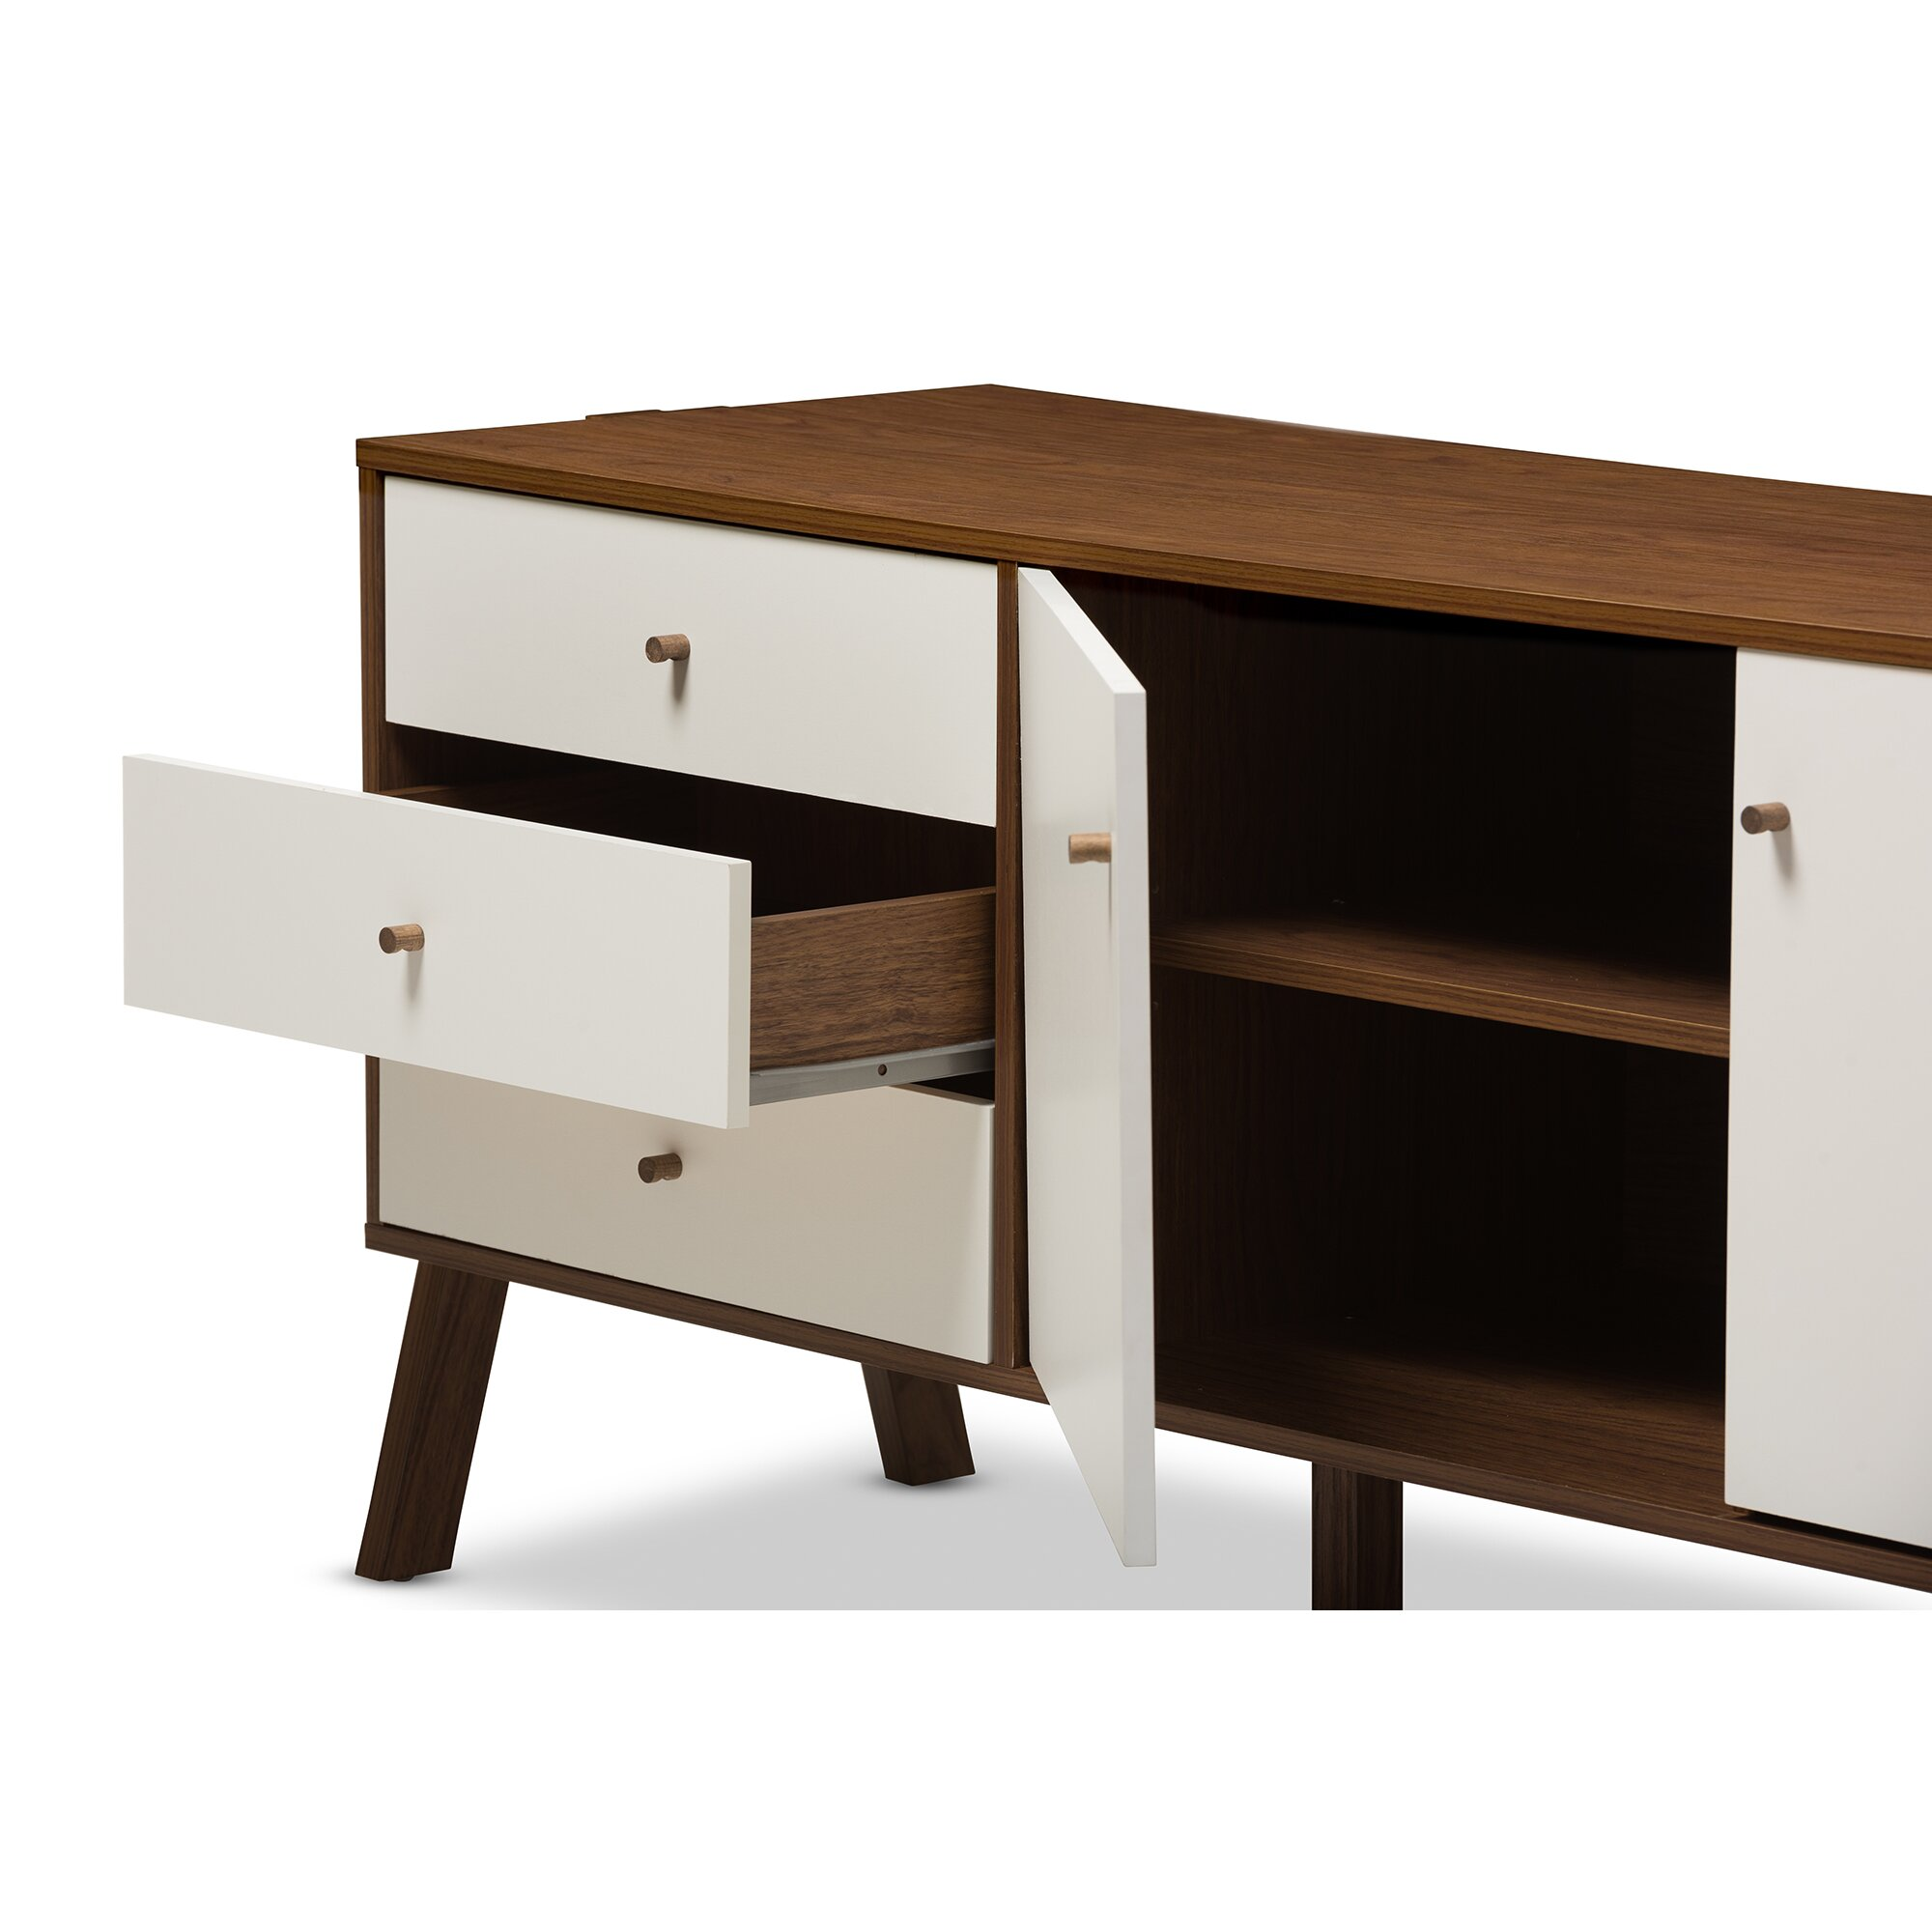 wholesale interiors harlow mid century modern scandinavian. Black Bedroom Furniture Sets. Home Design Ideas